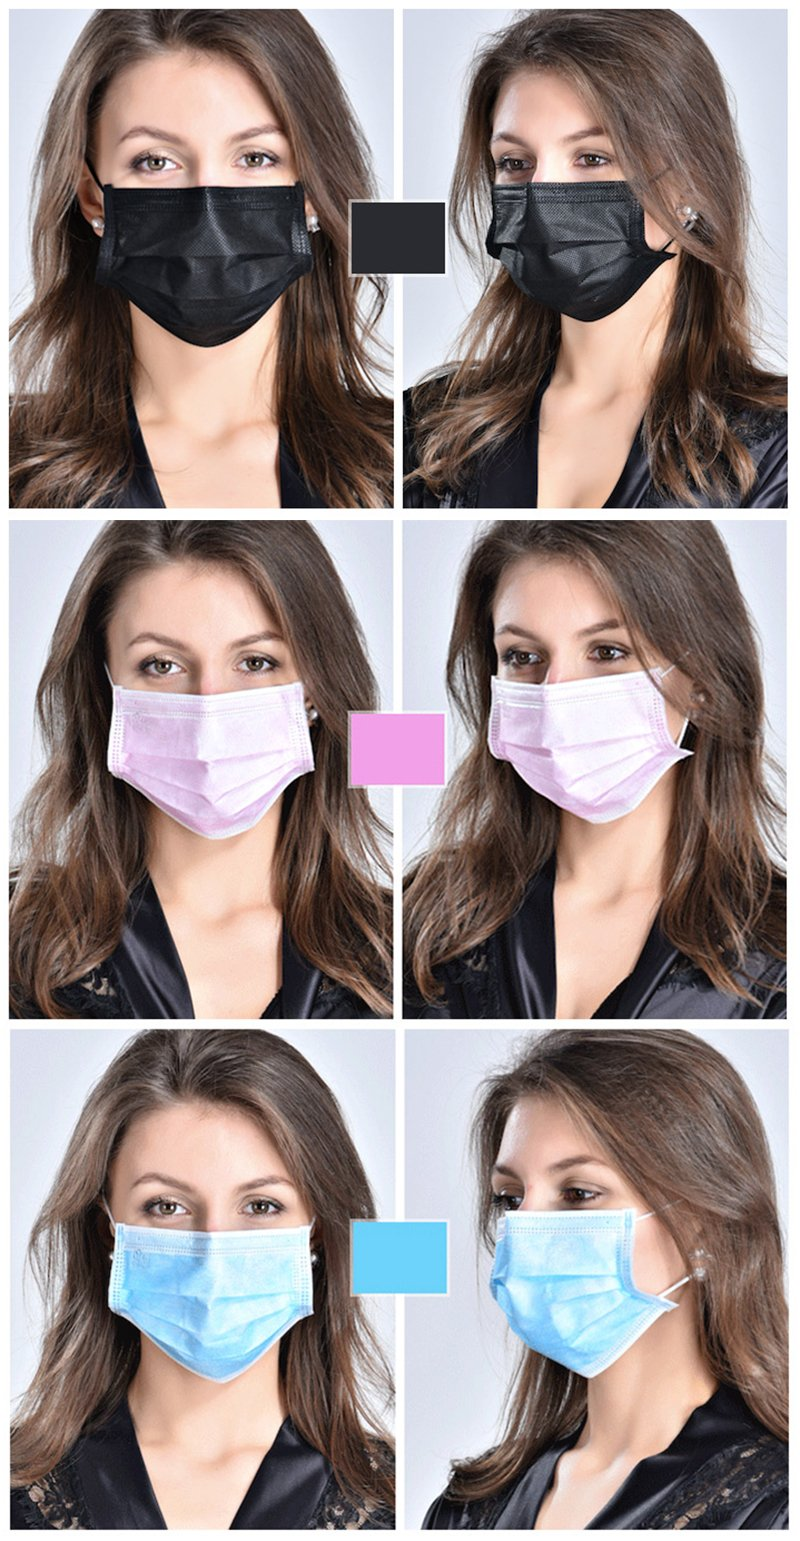 Bigmai 10pcs/Pack Durable Solid Color Unisex Nonwovens Cloth Mouth Mask Disposable Surgical Face Salon Ear Loop Style Medical Mouth Flu Mask Fog-proof Dust-proof